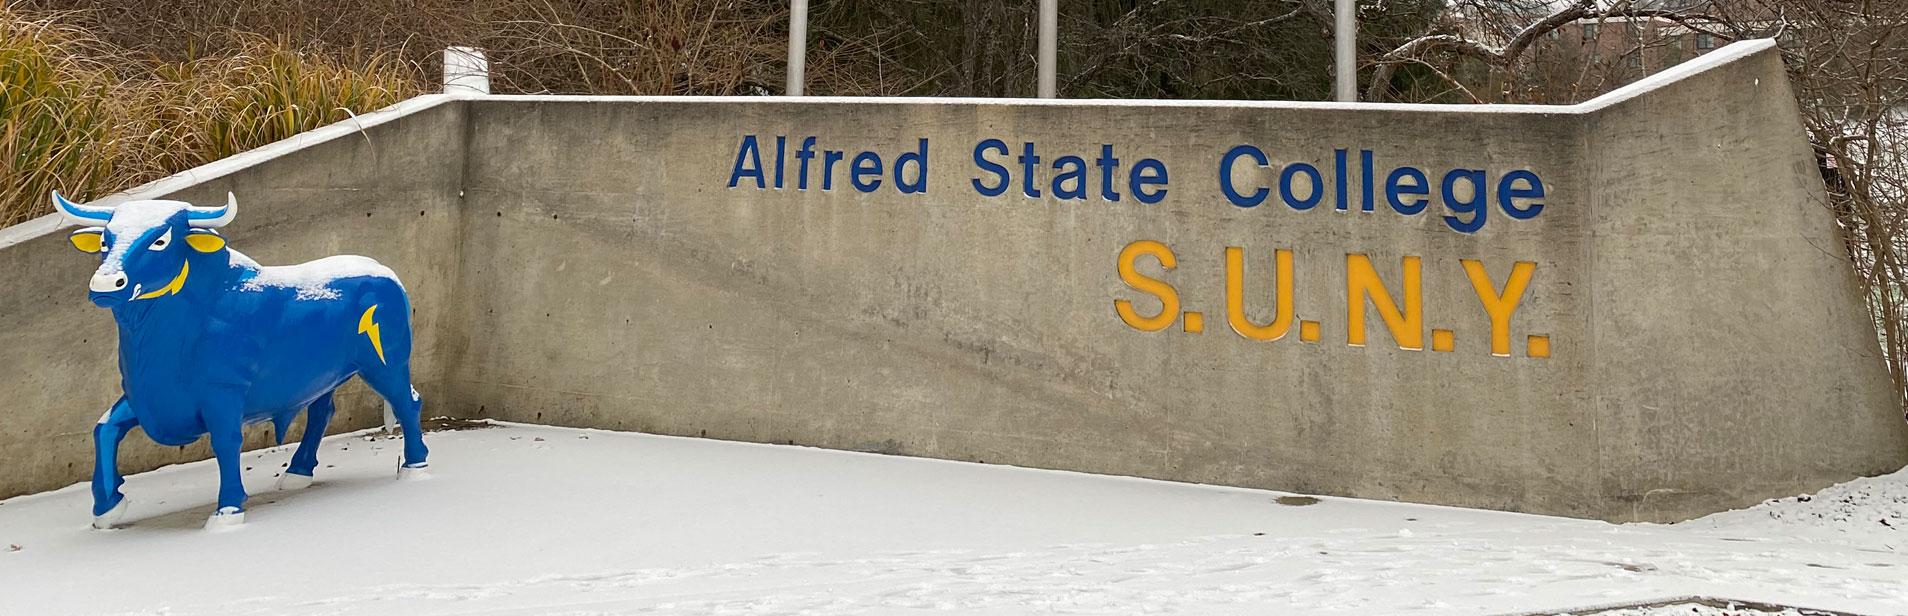 Alfred Student Storage | Alfred State College